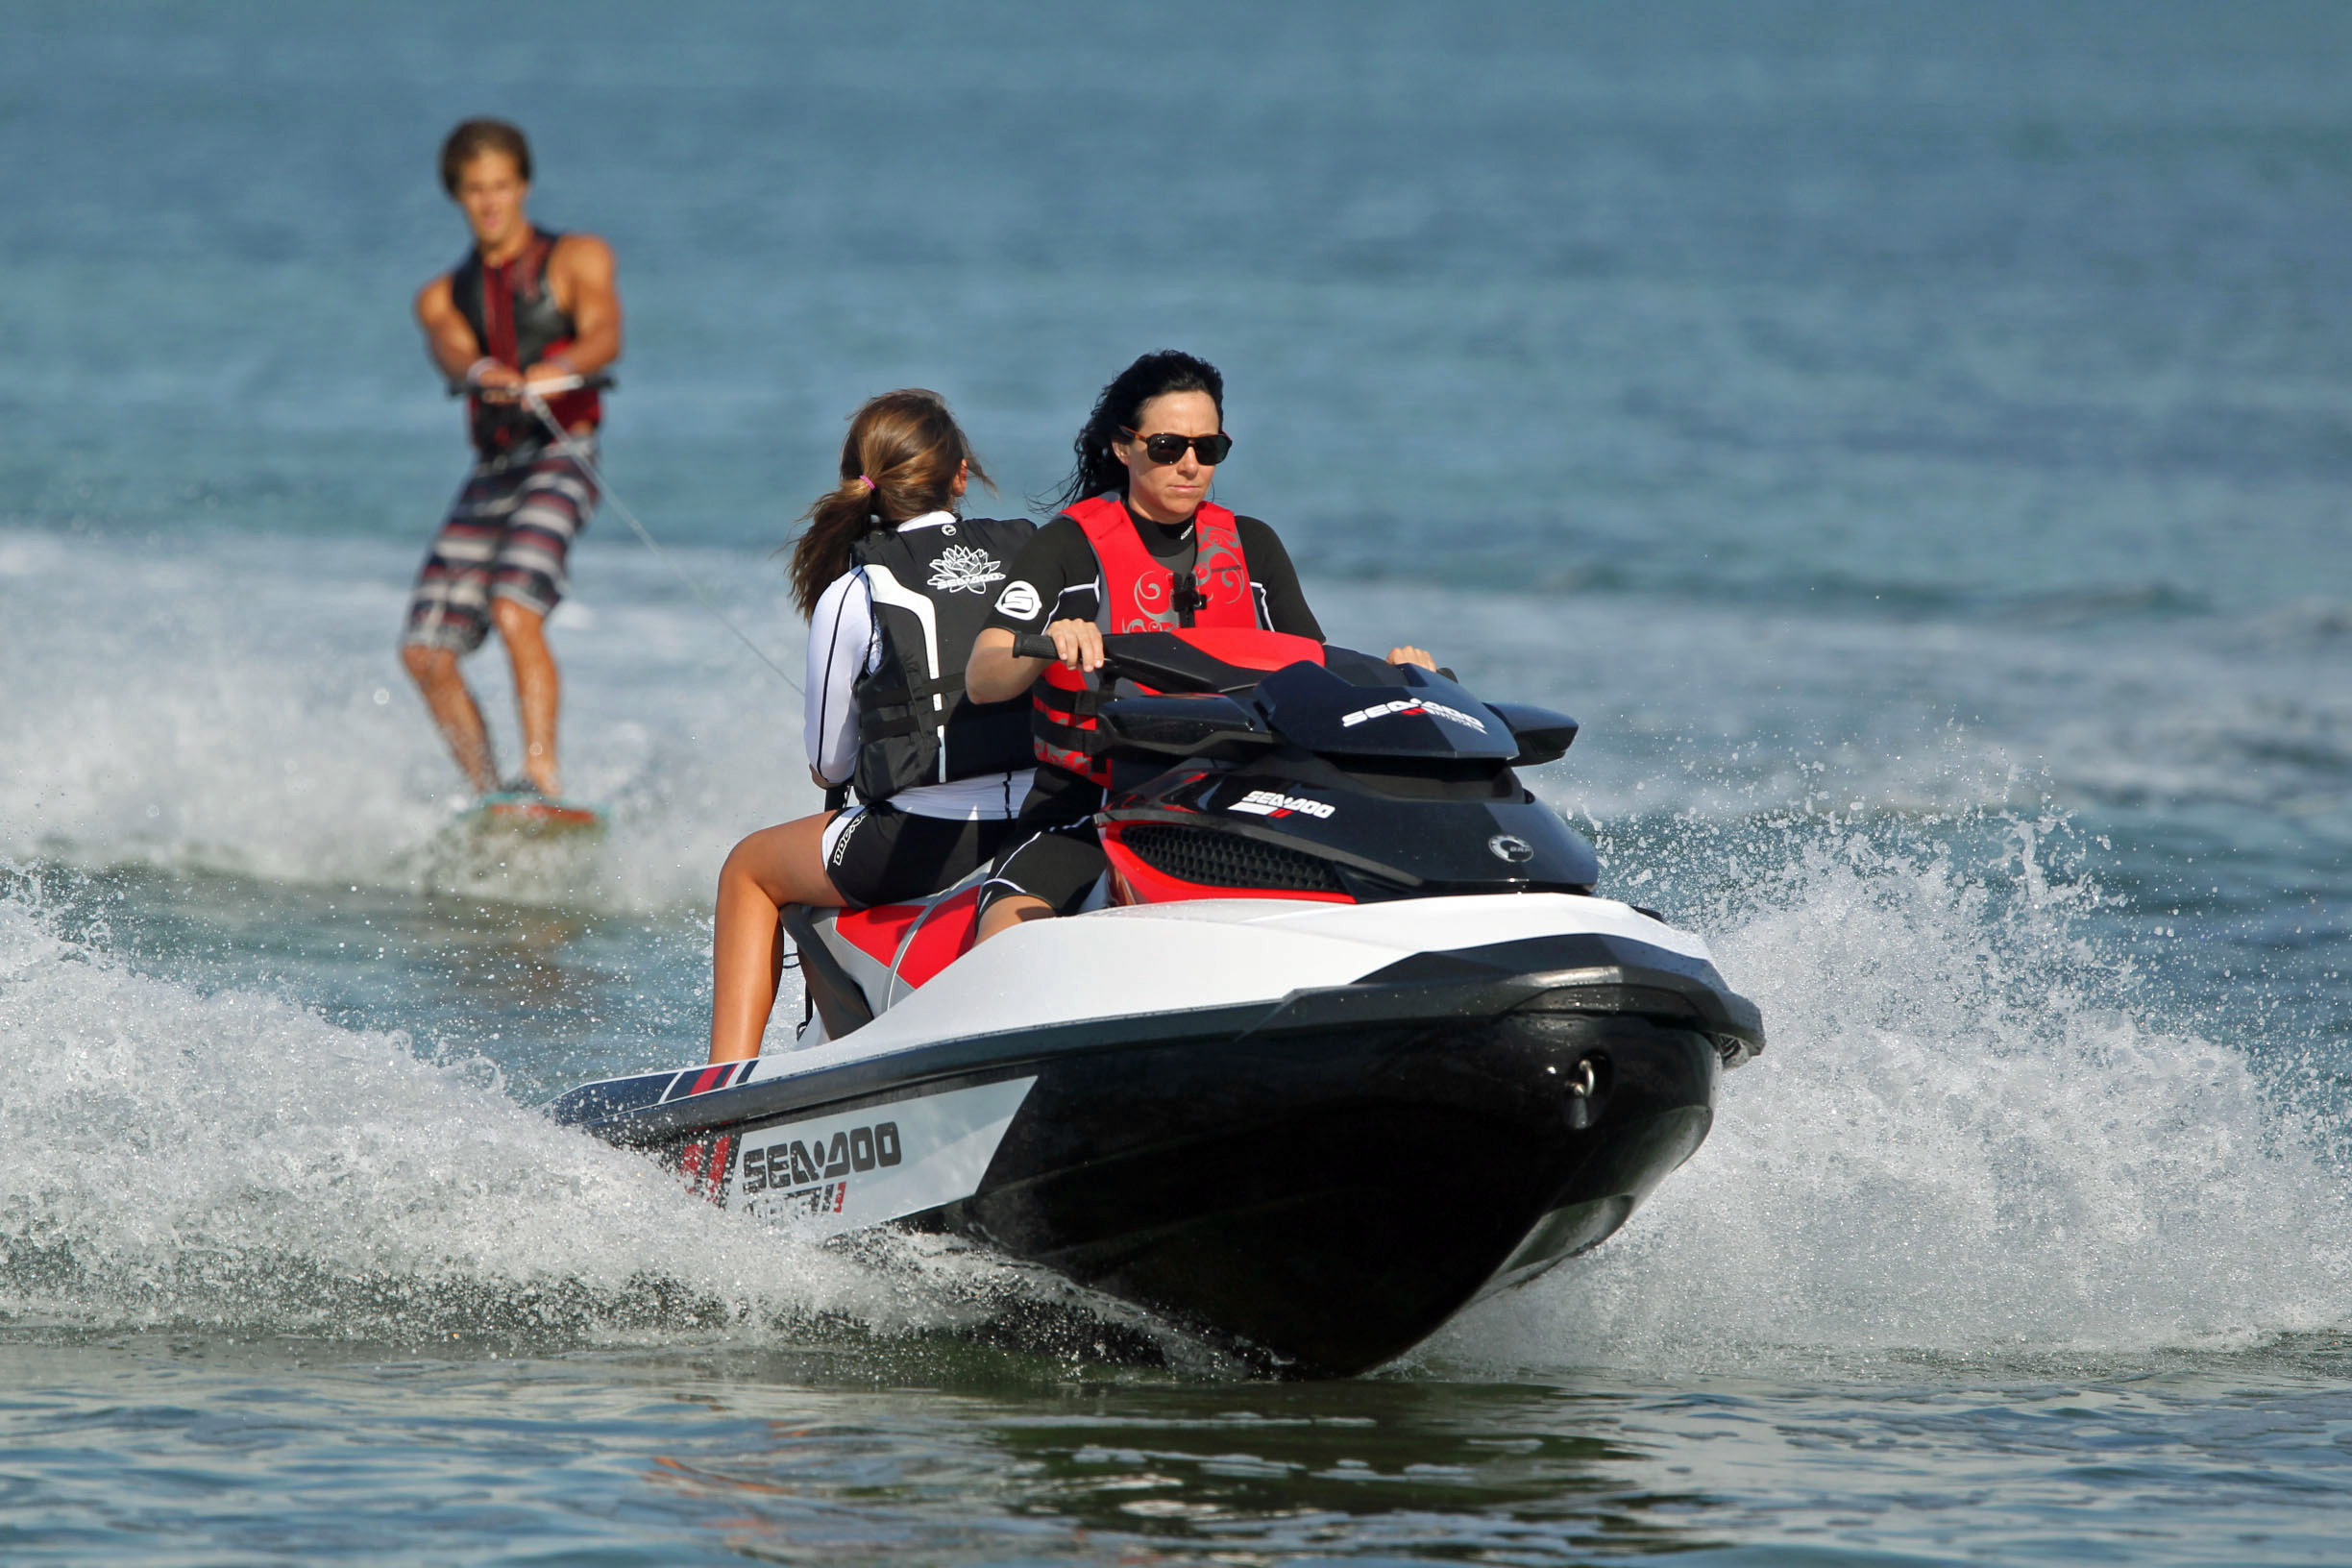 Best Oil For Yamaha Jet Ski